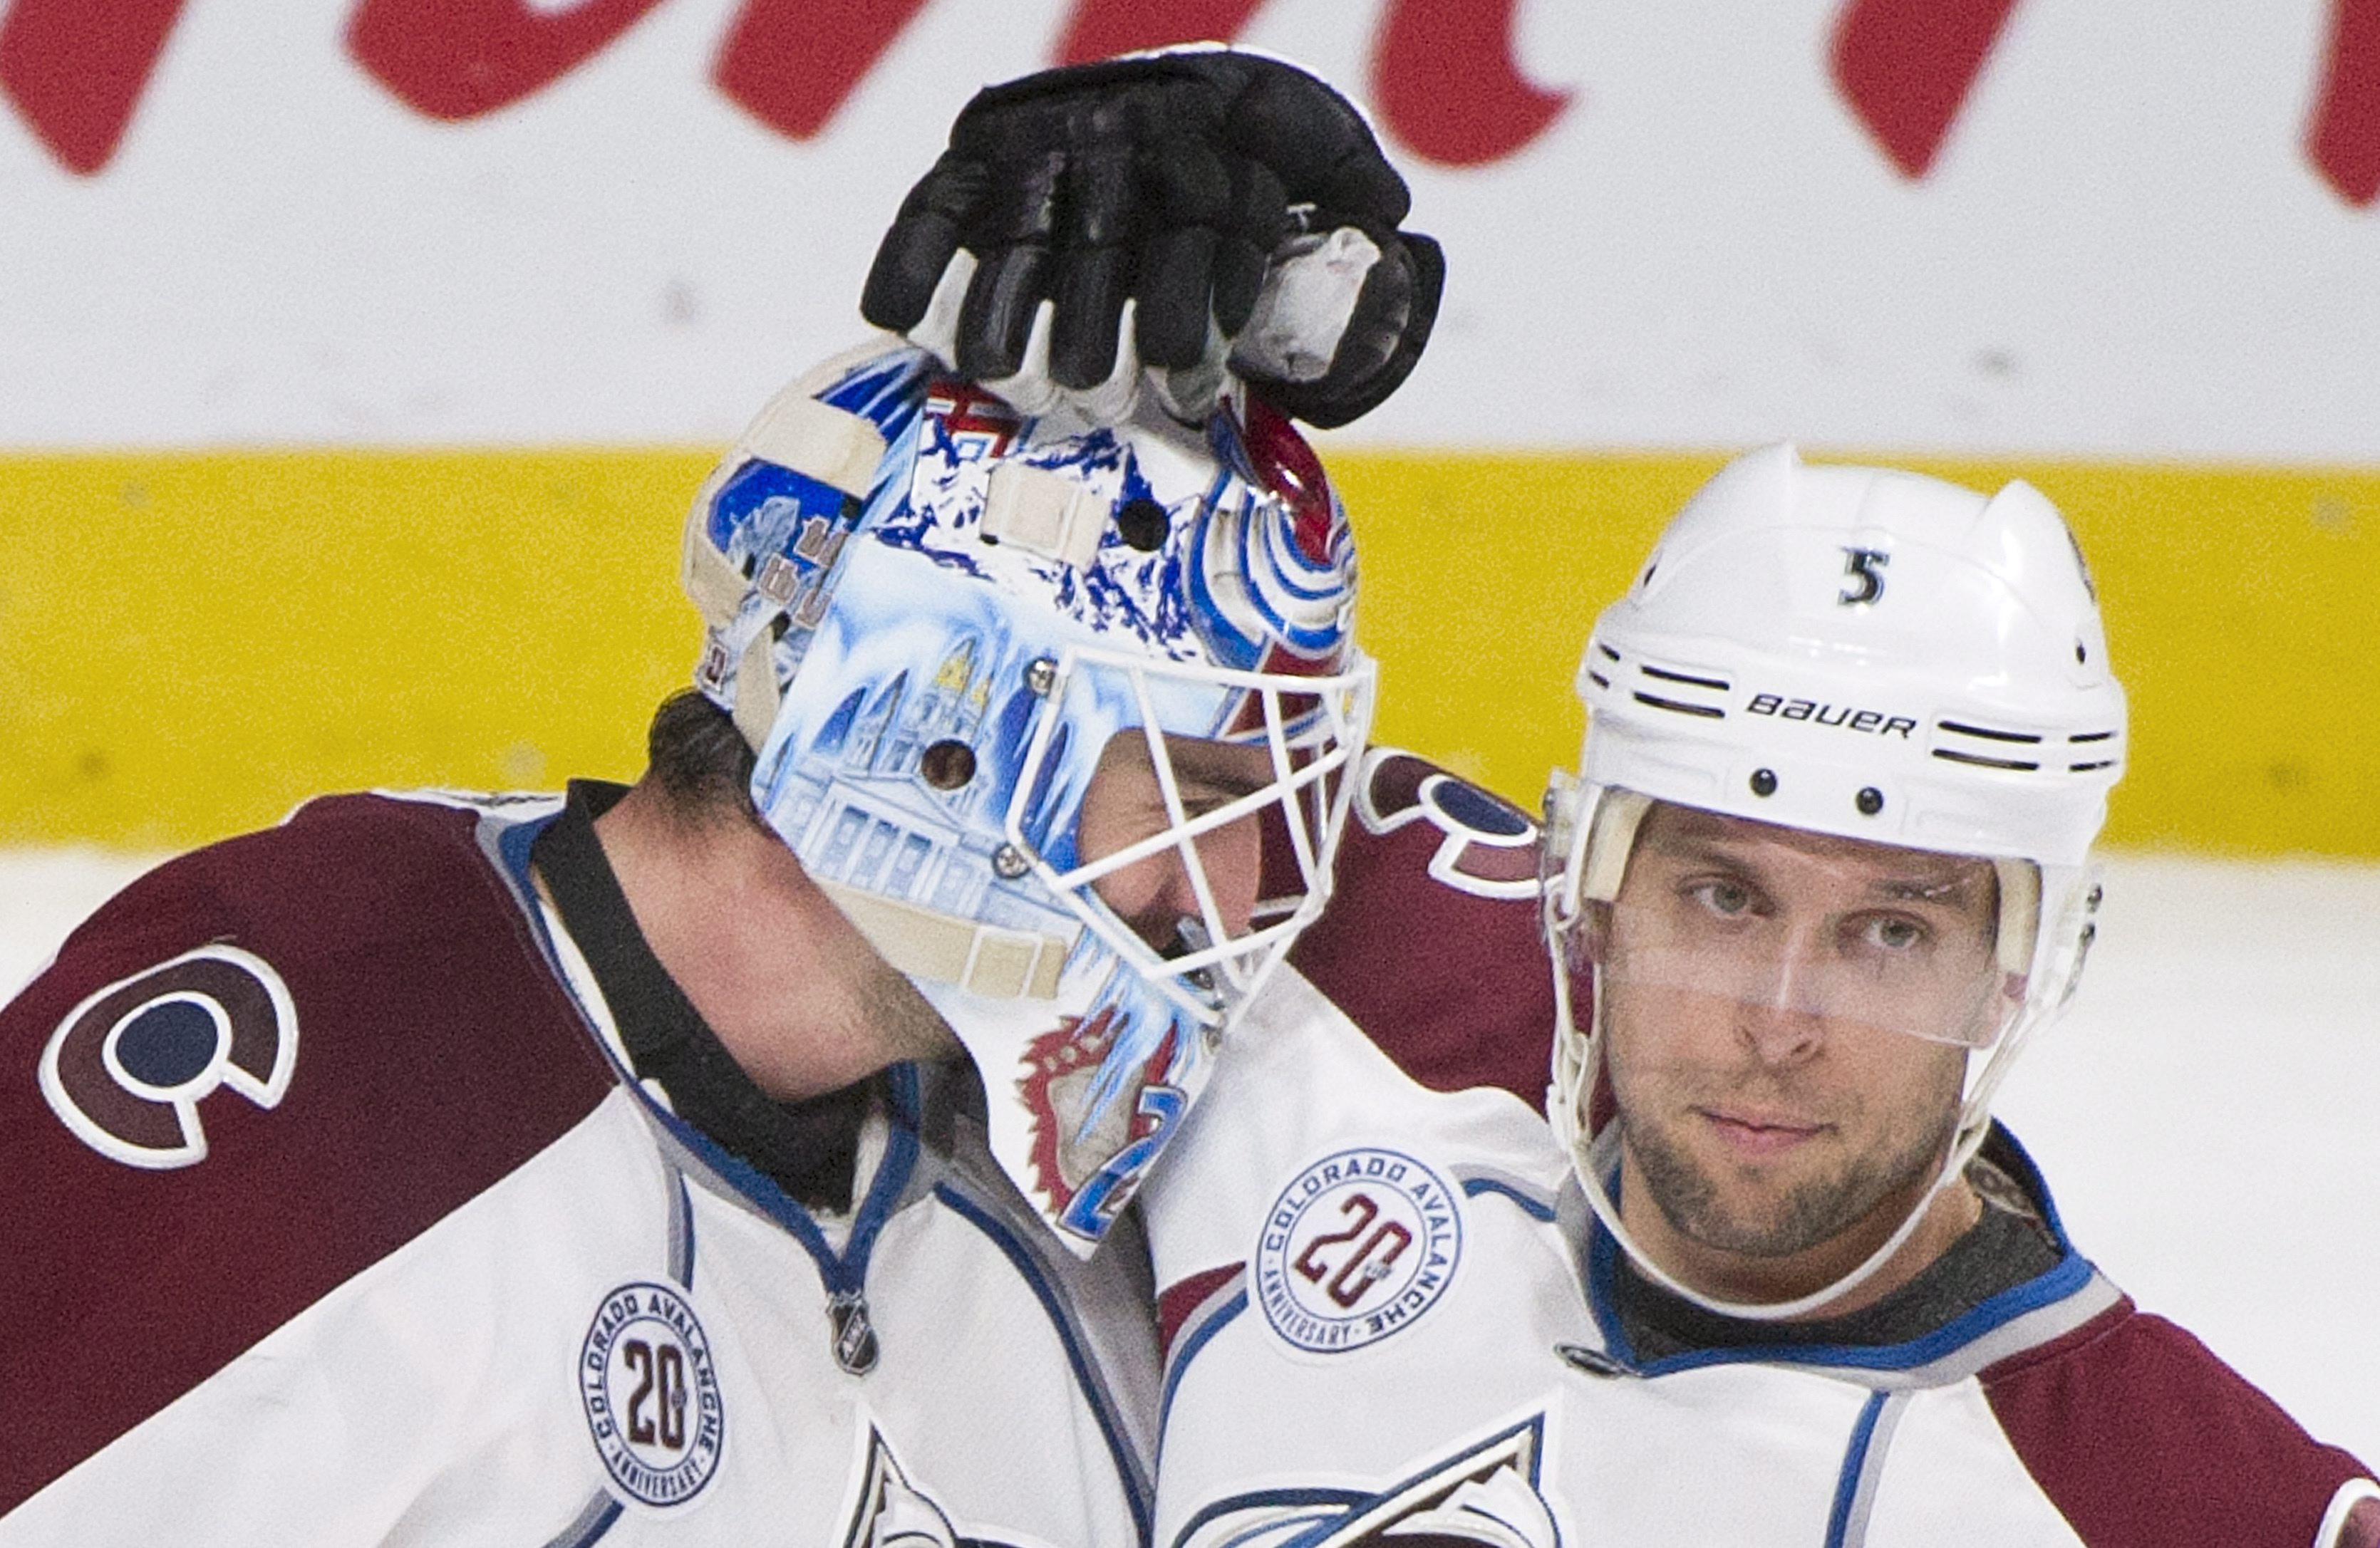 Colorado Avalanche goaltender Reto Berra, left, celebrates with teammate Nate Guenin after defeating the Montreal Canadiens in an NHL hockey game in Montreal, Saturday, Nov. 14, 2015. (Graham Hughes/The Canadian Press via AP) MANDATORY CREDIT